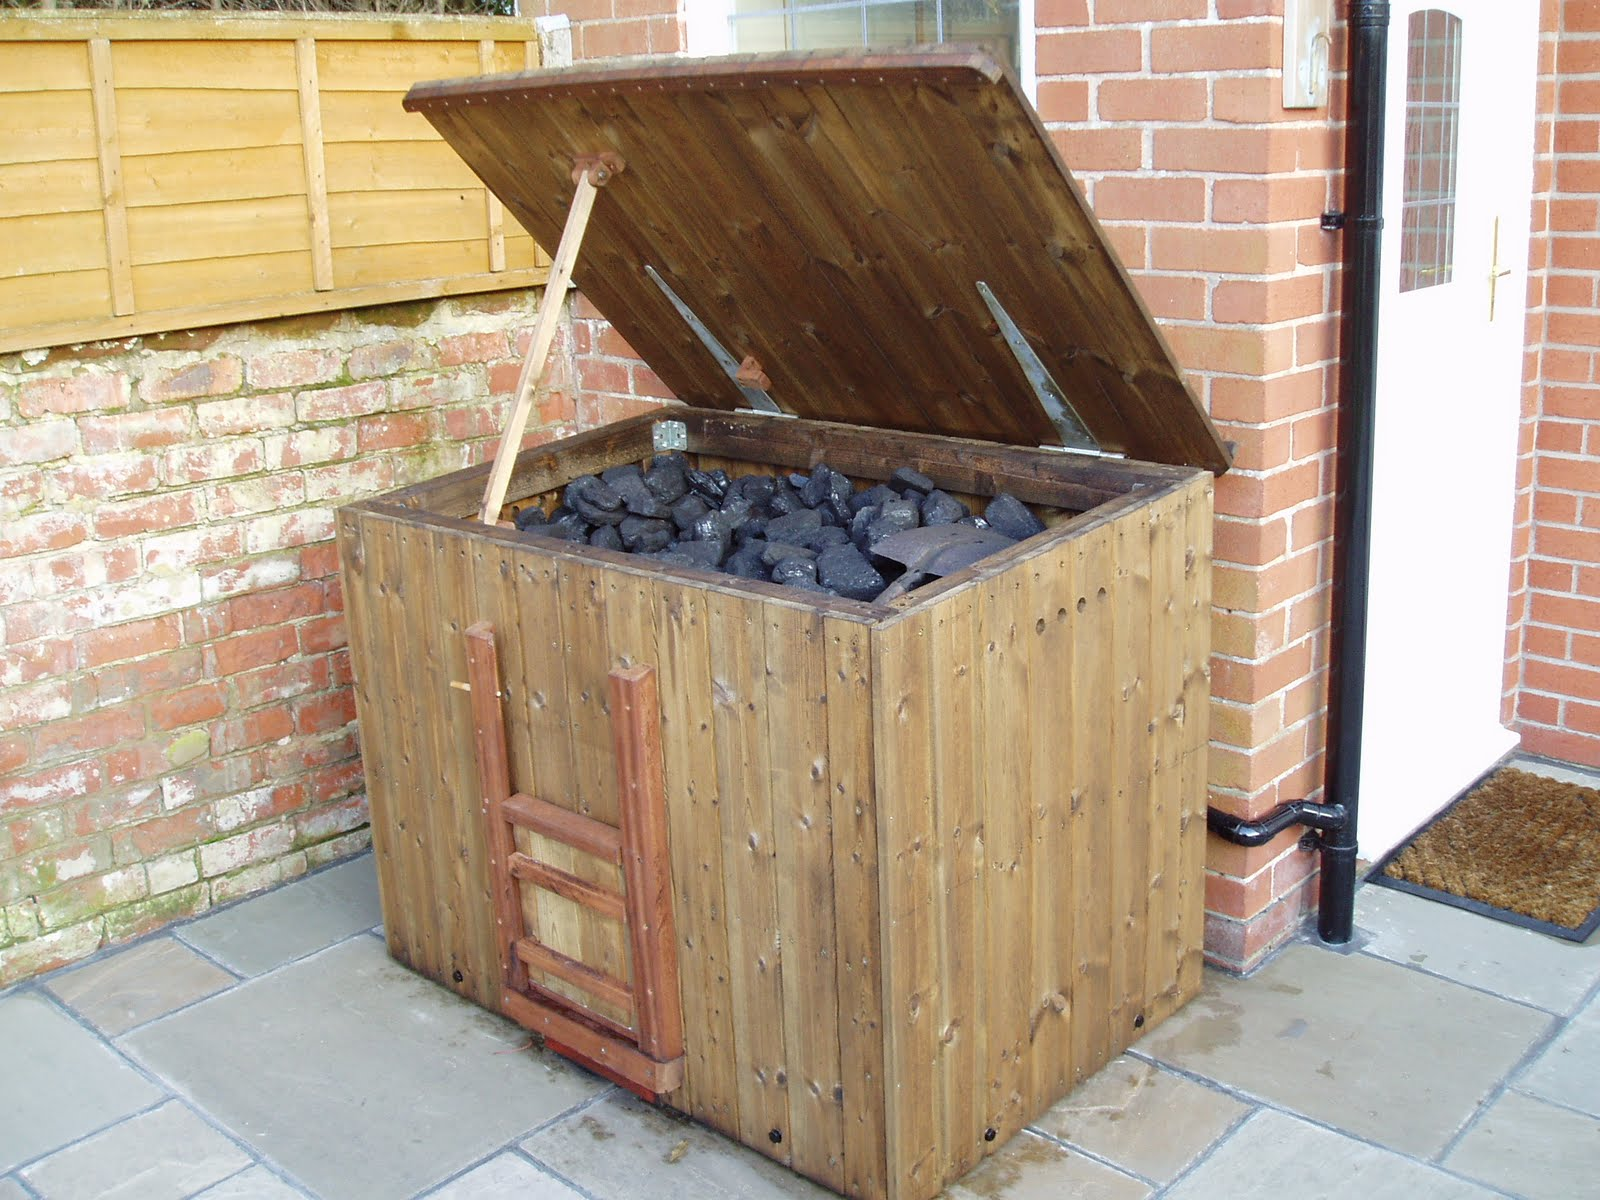 Harthside The Coal Bunker Is Finished And Operational